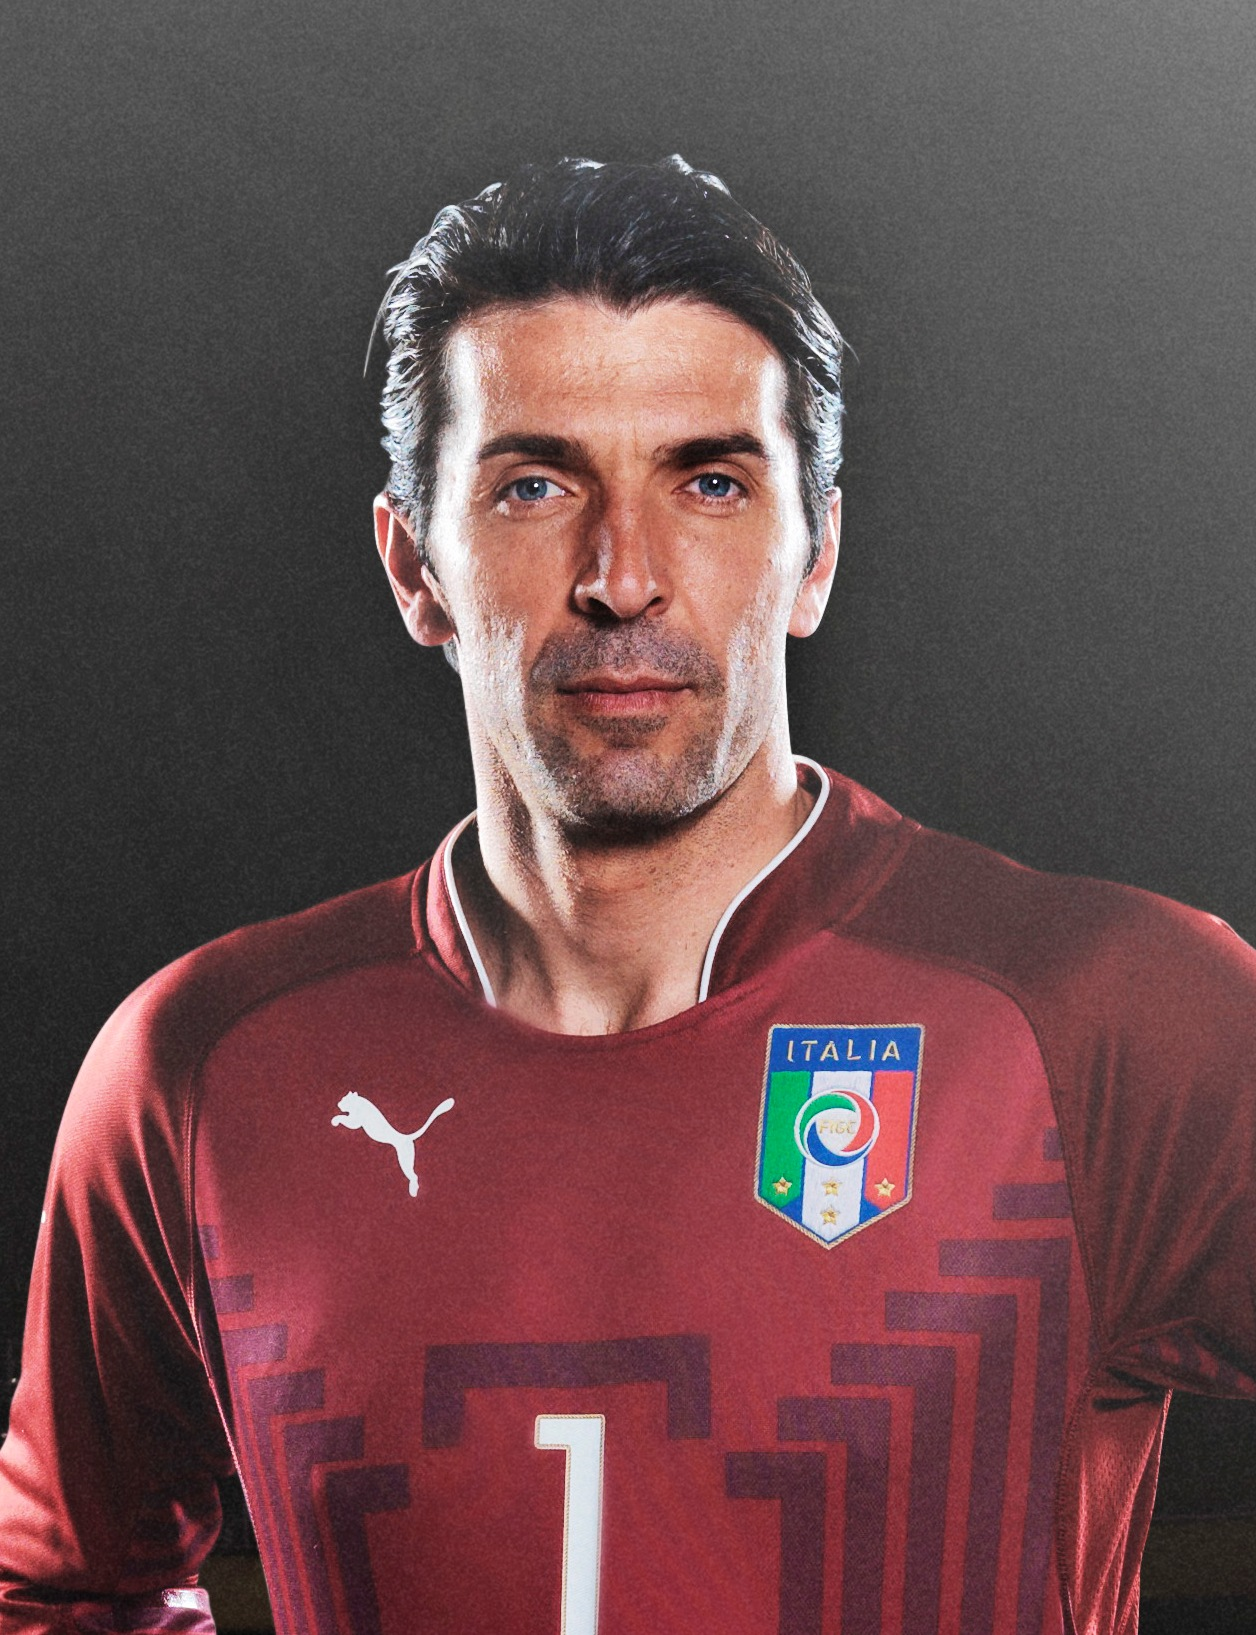 dd9754137 Gianluigi Buffon - Wikipedia